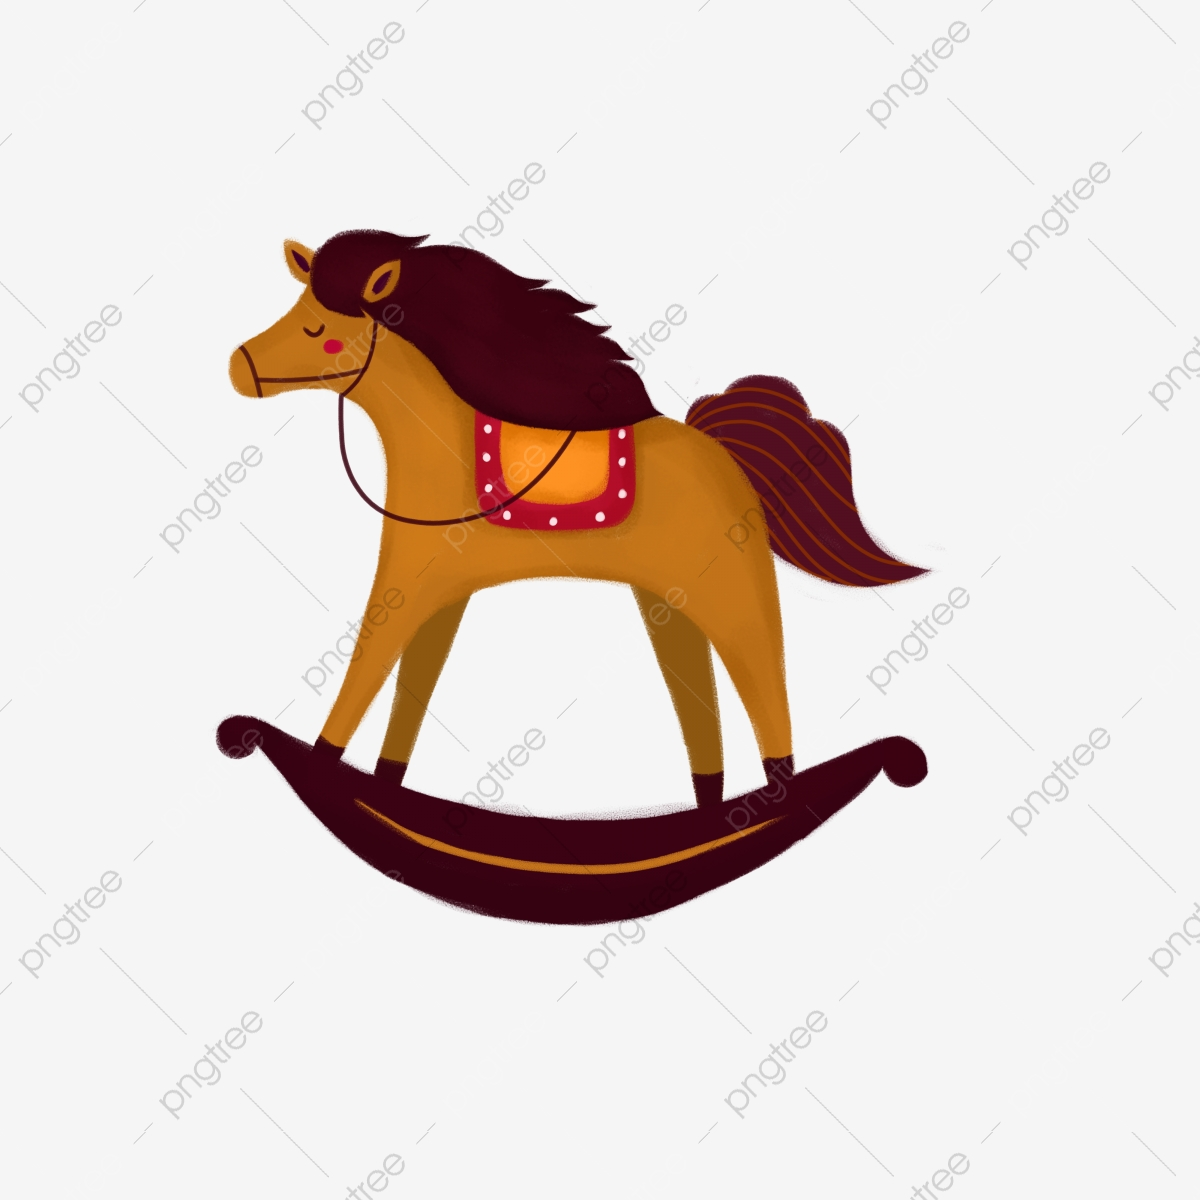 Trojan Horse Candle Mailbox Christmas Tree Christmas Santa Claus Snowman Png Transparent Clipart Image And Psd File For Free Download